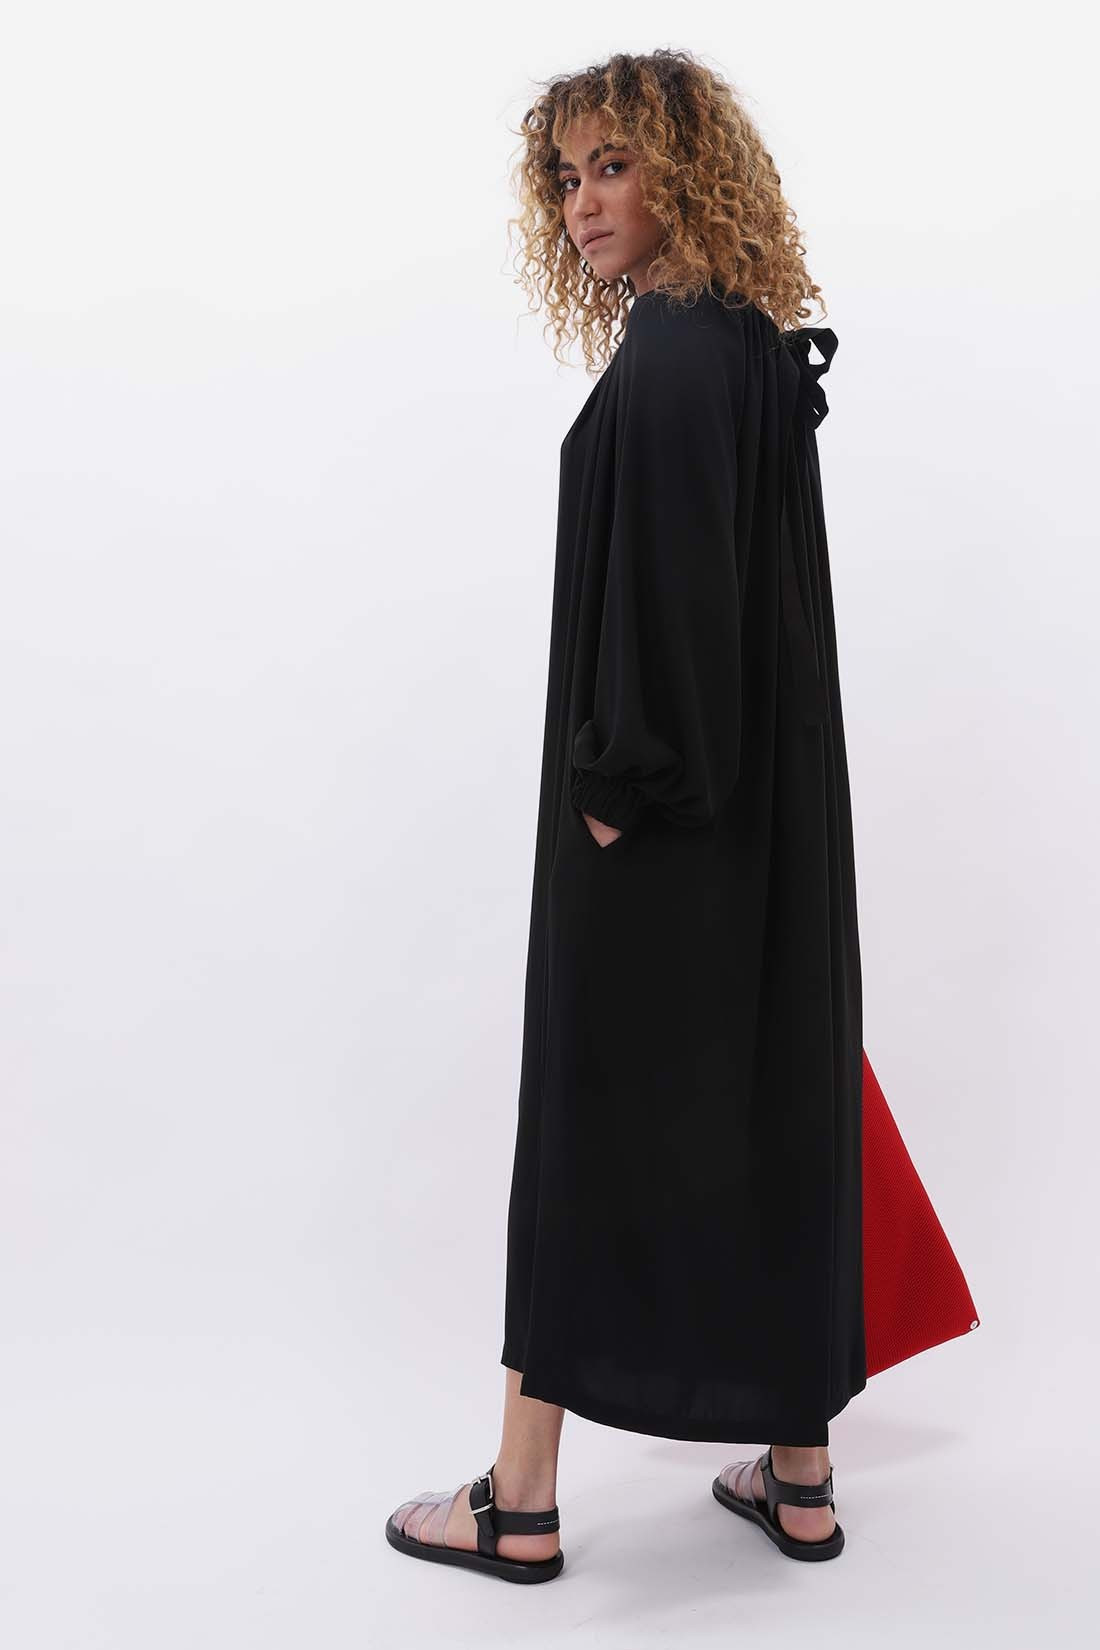 MM6 MAISON MARGIELA / Elastic fluid dress Black